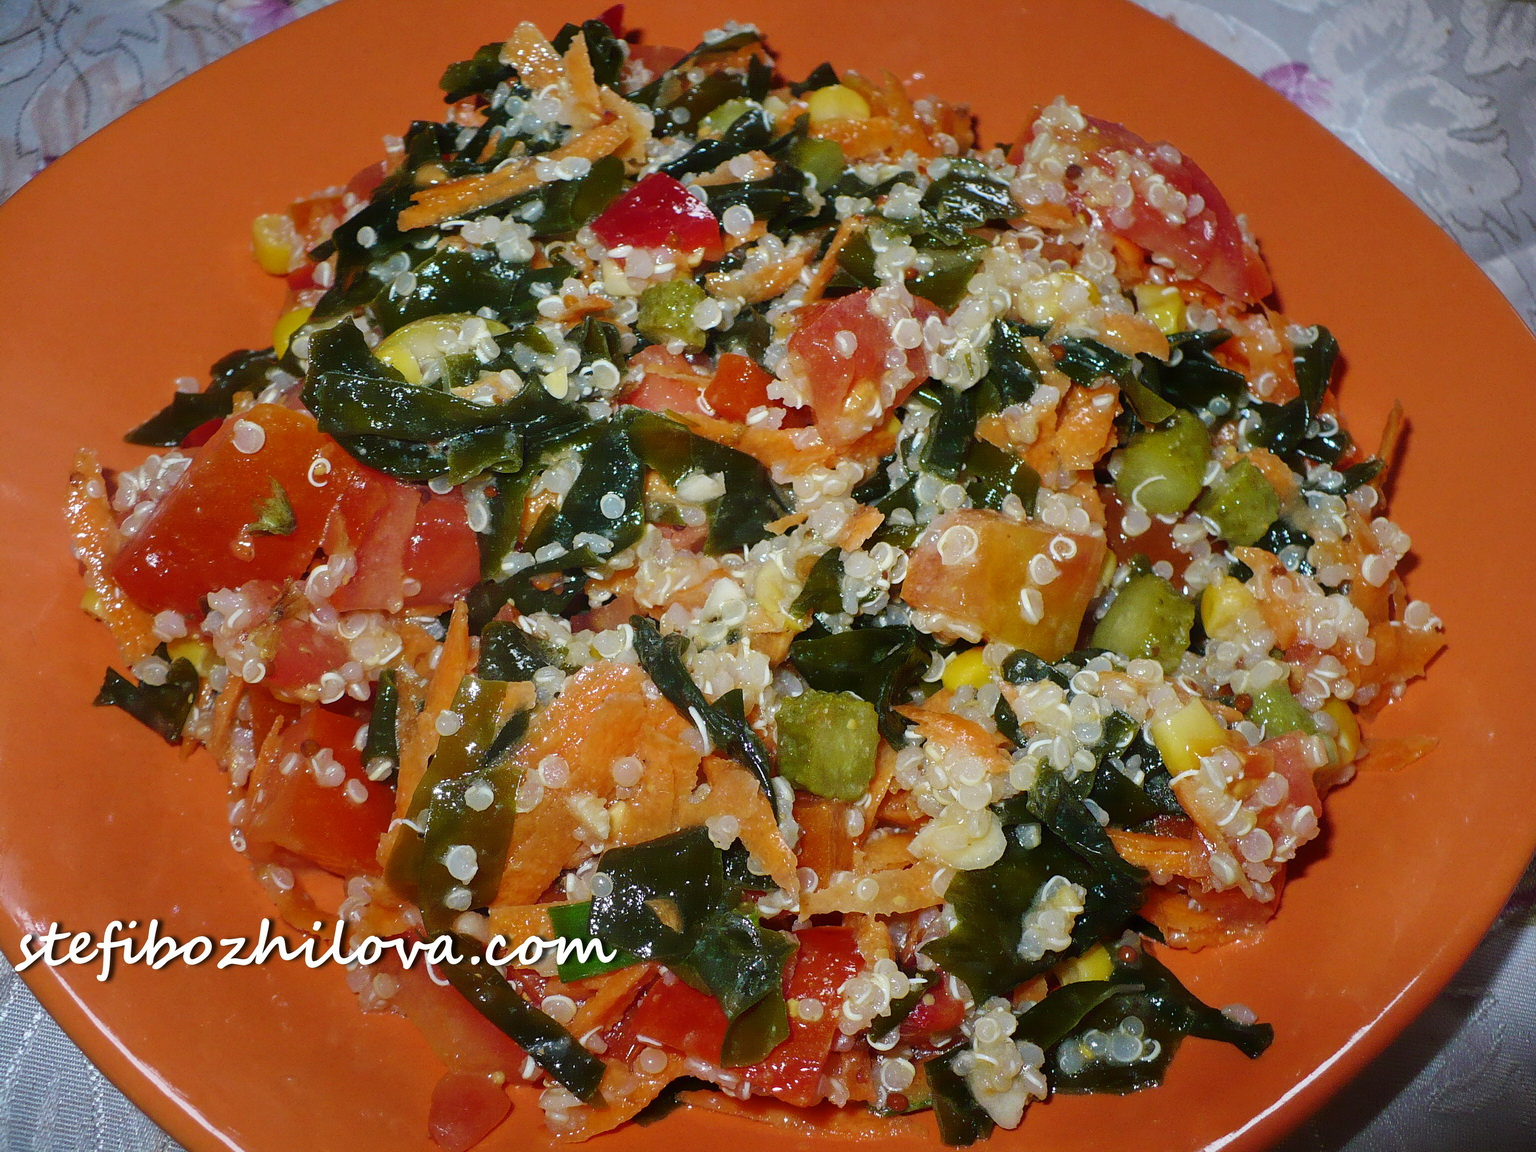 Salad with quinoa, green algae and veggies - 2